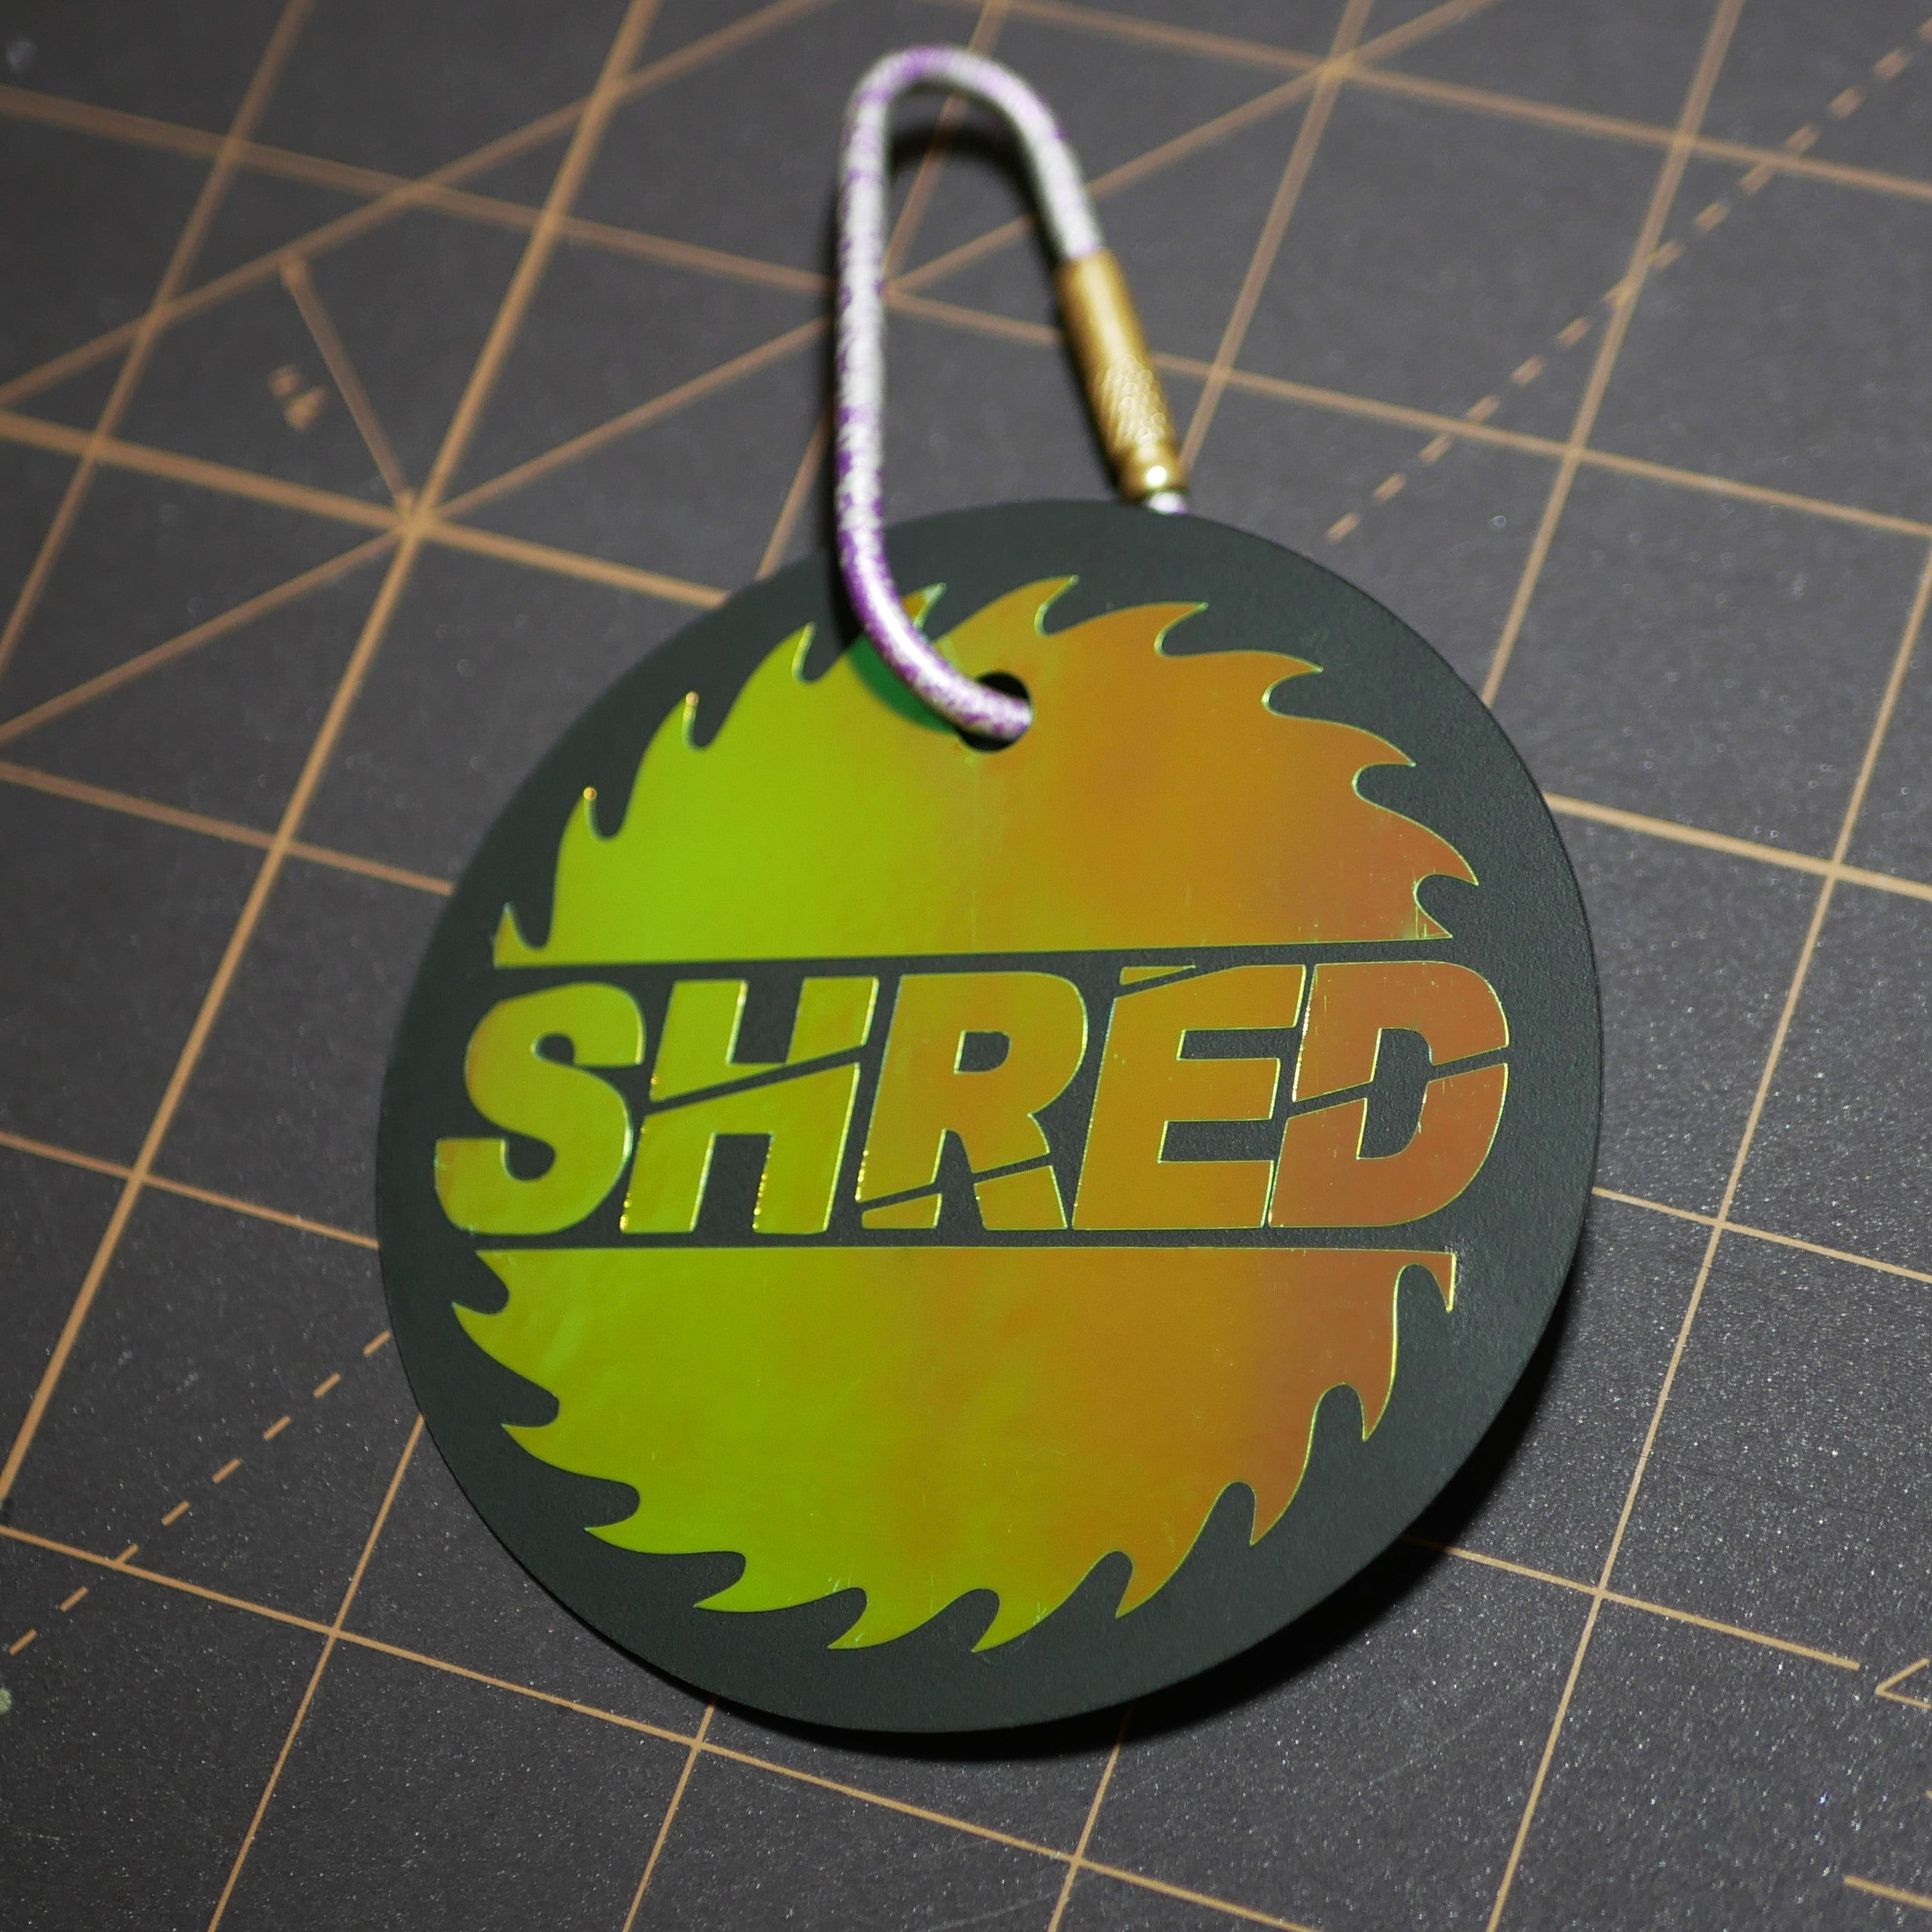 "Limited Edition 3.2x3.2"" SHRED Holographic Reflector"